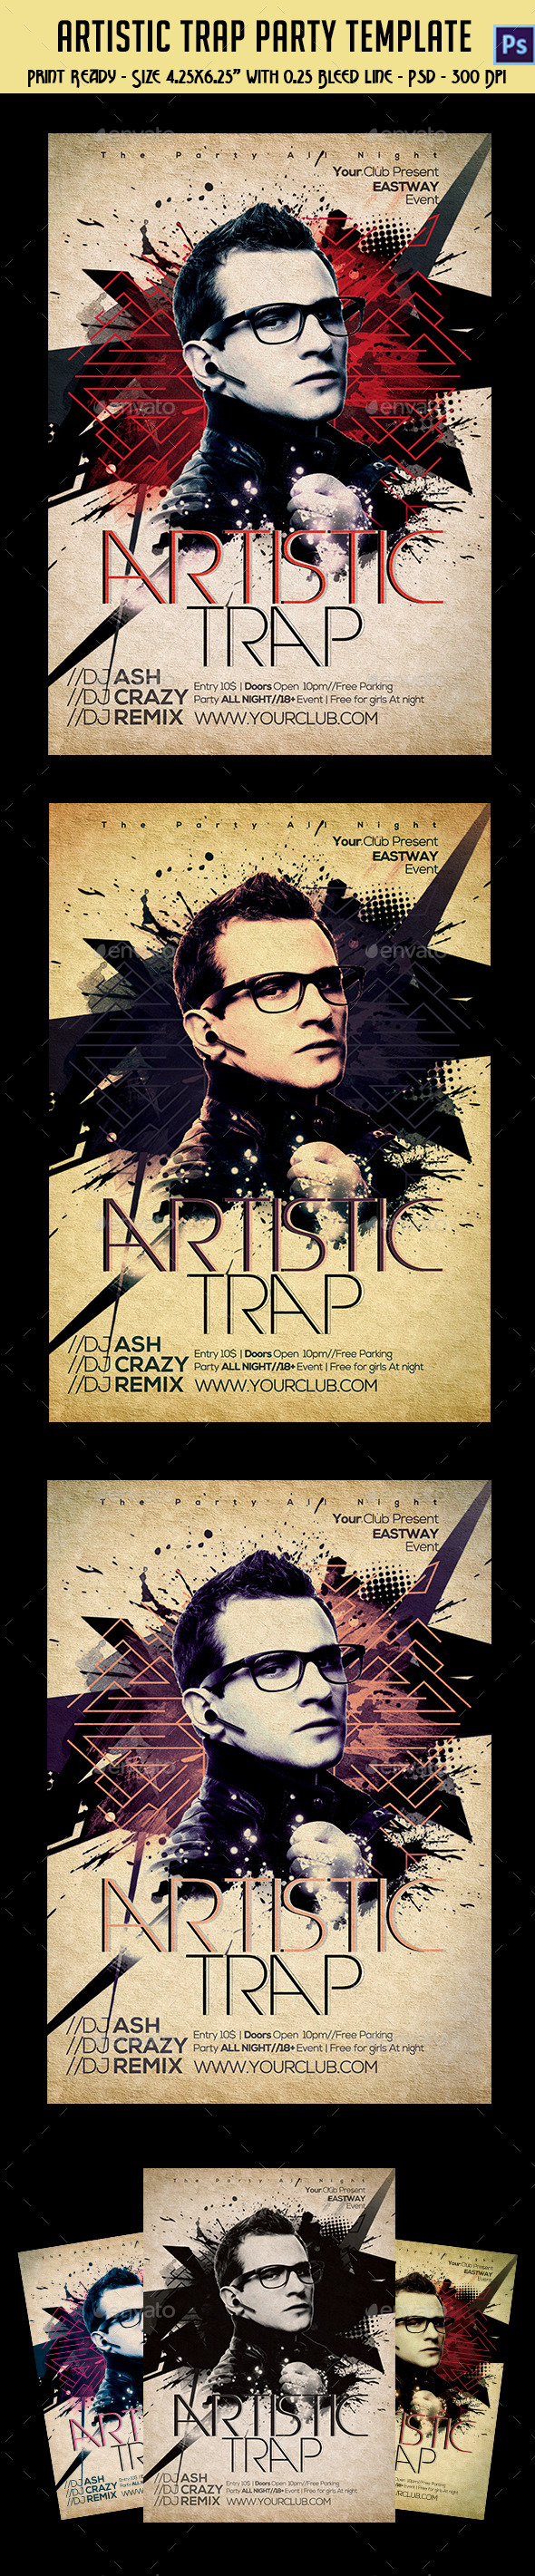 Artistic Trap Party Flyer - Clubs & Parties Events